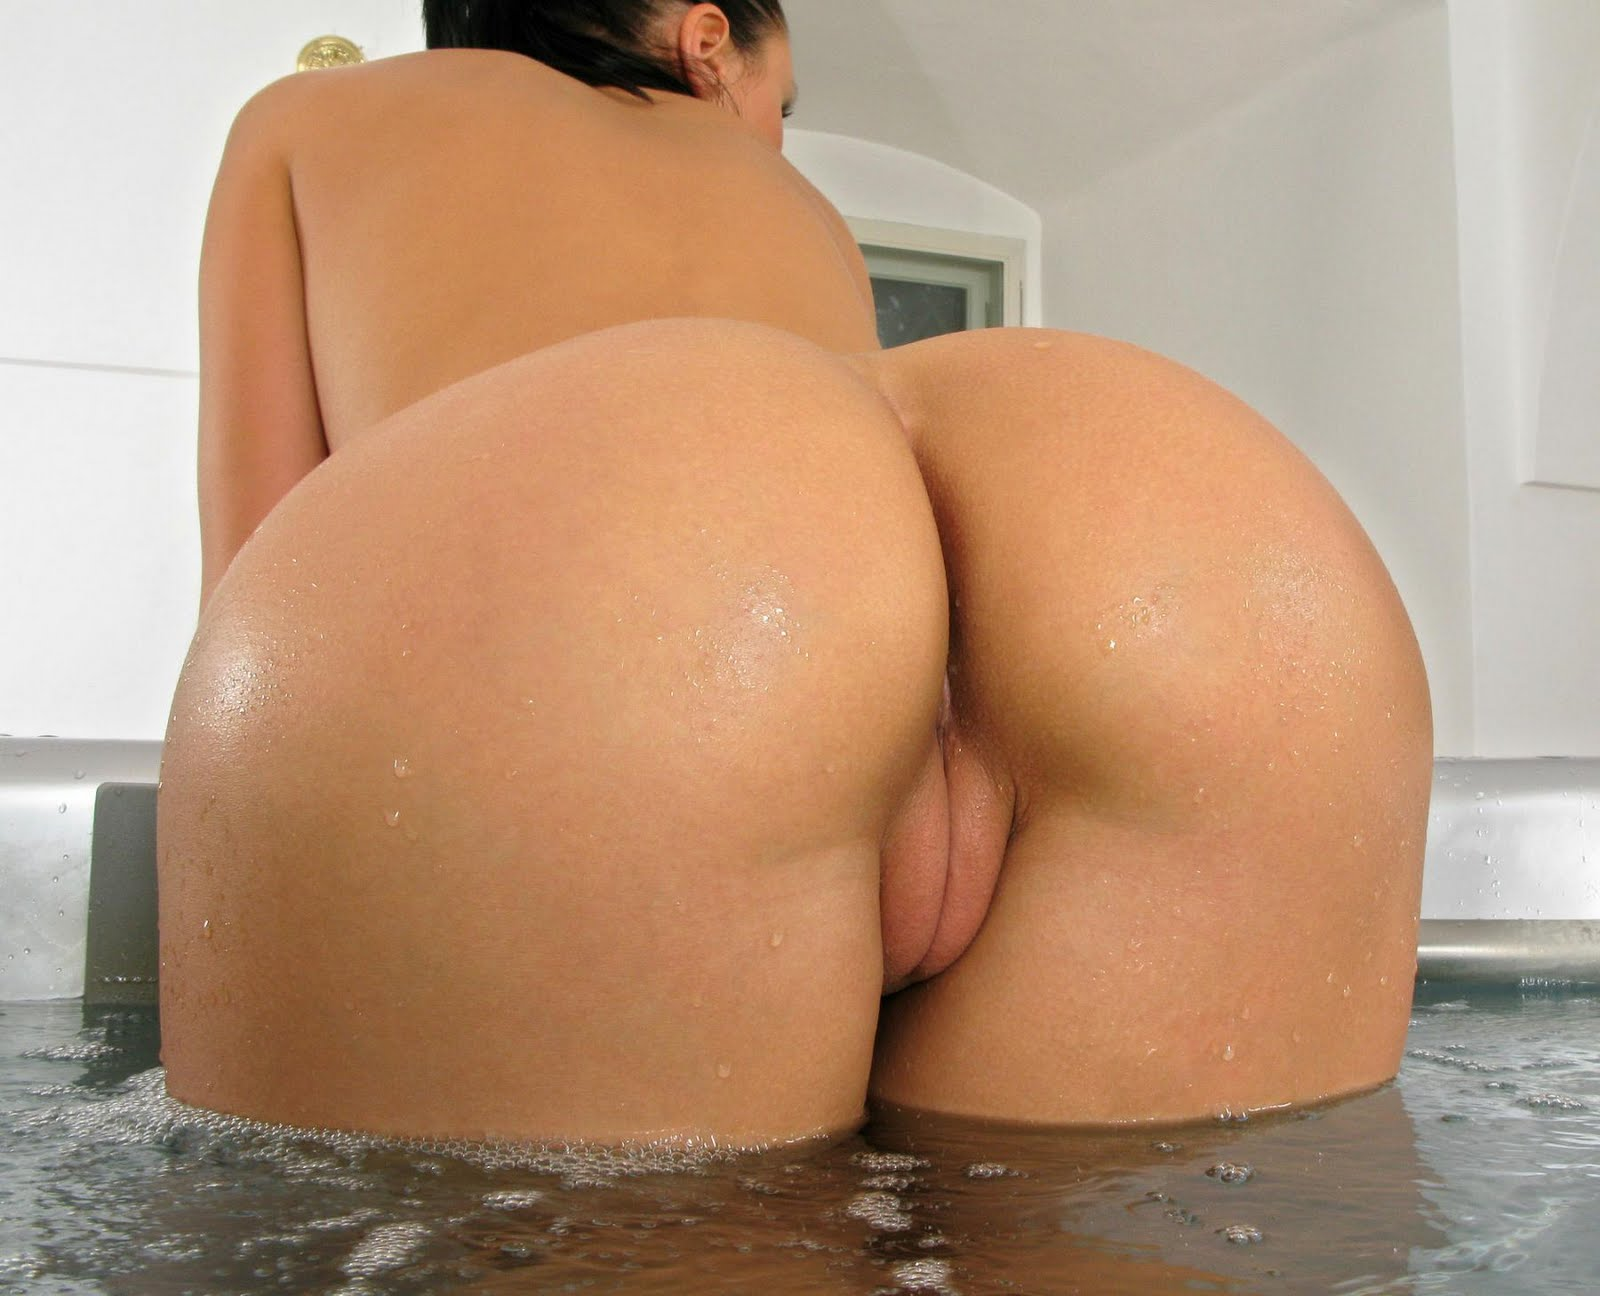 http://4.bp.blogspot.com/-3xZVHfvVets/ThYiRXQQksI/AAAAAAAAAXY/HXHLEefQVsc/s1600/Big+Wet+Ass+super+Pussy+HD+Erotic+Wallpaper.jpg